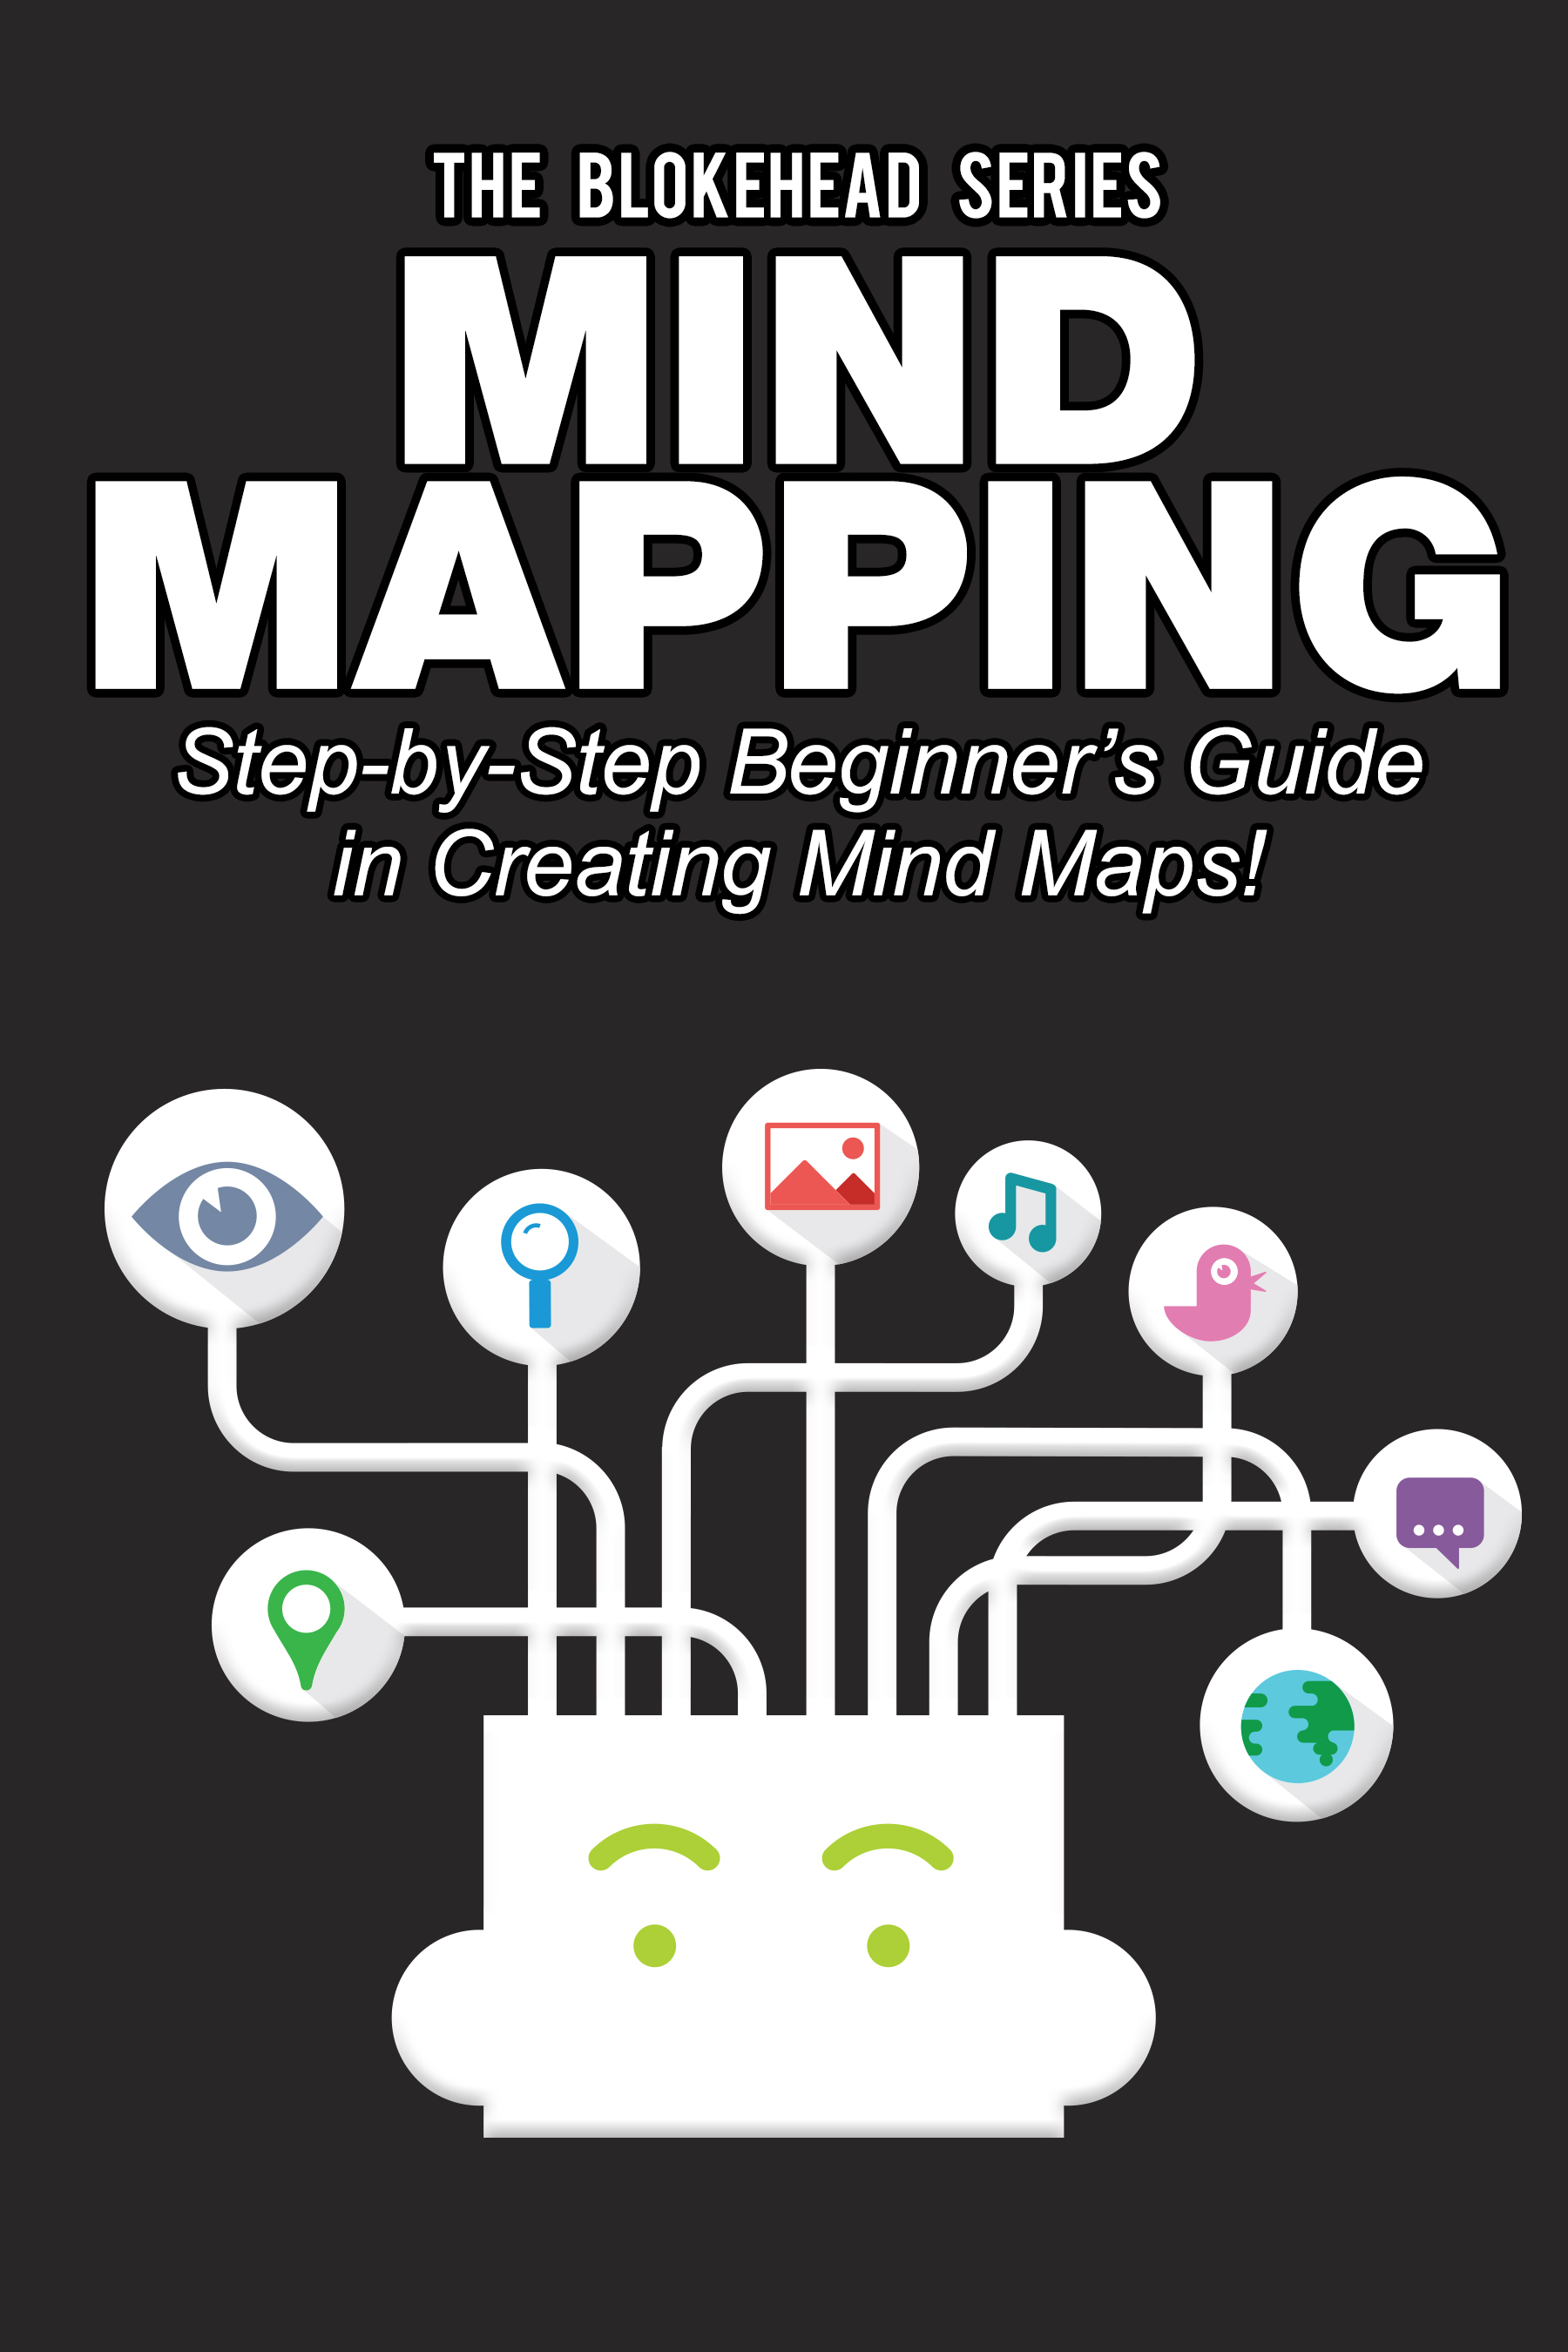 Mind mapping: step-by-step beginner's guide in creating mind maps!